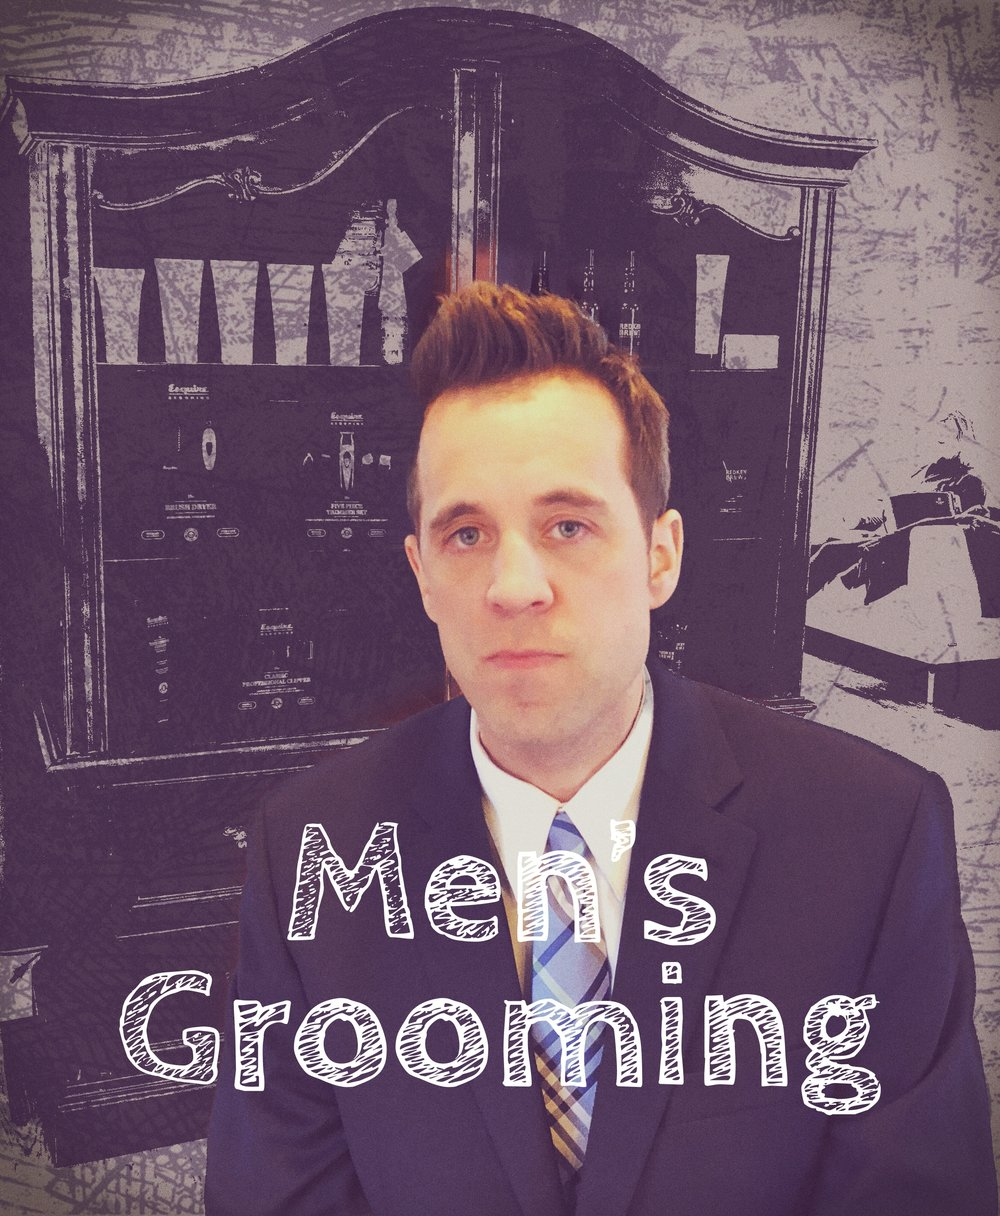 men's grooming - Offering precision cuts, color, shaves, styling and waxing for men of all ages in an enjoyable, relaxing and professional atmosphere